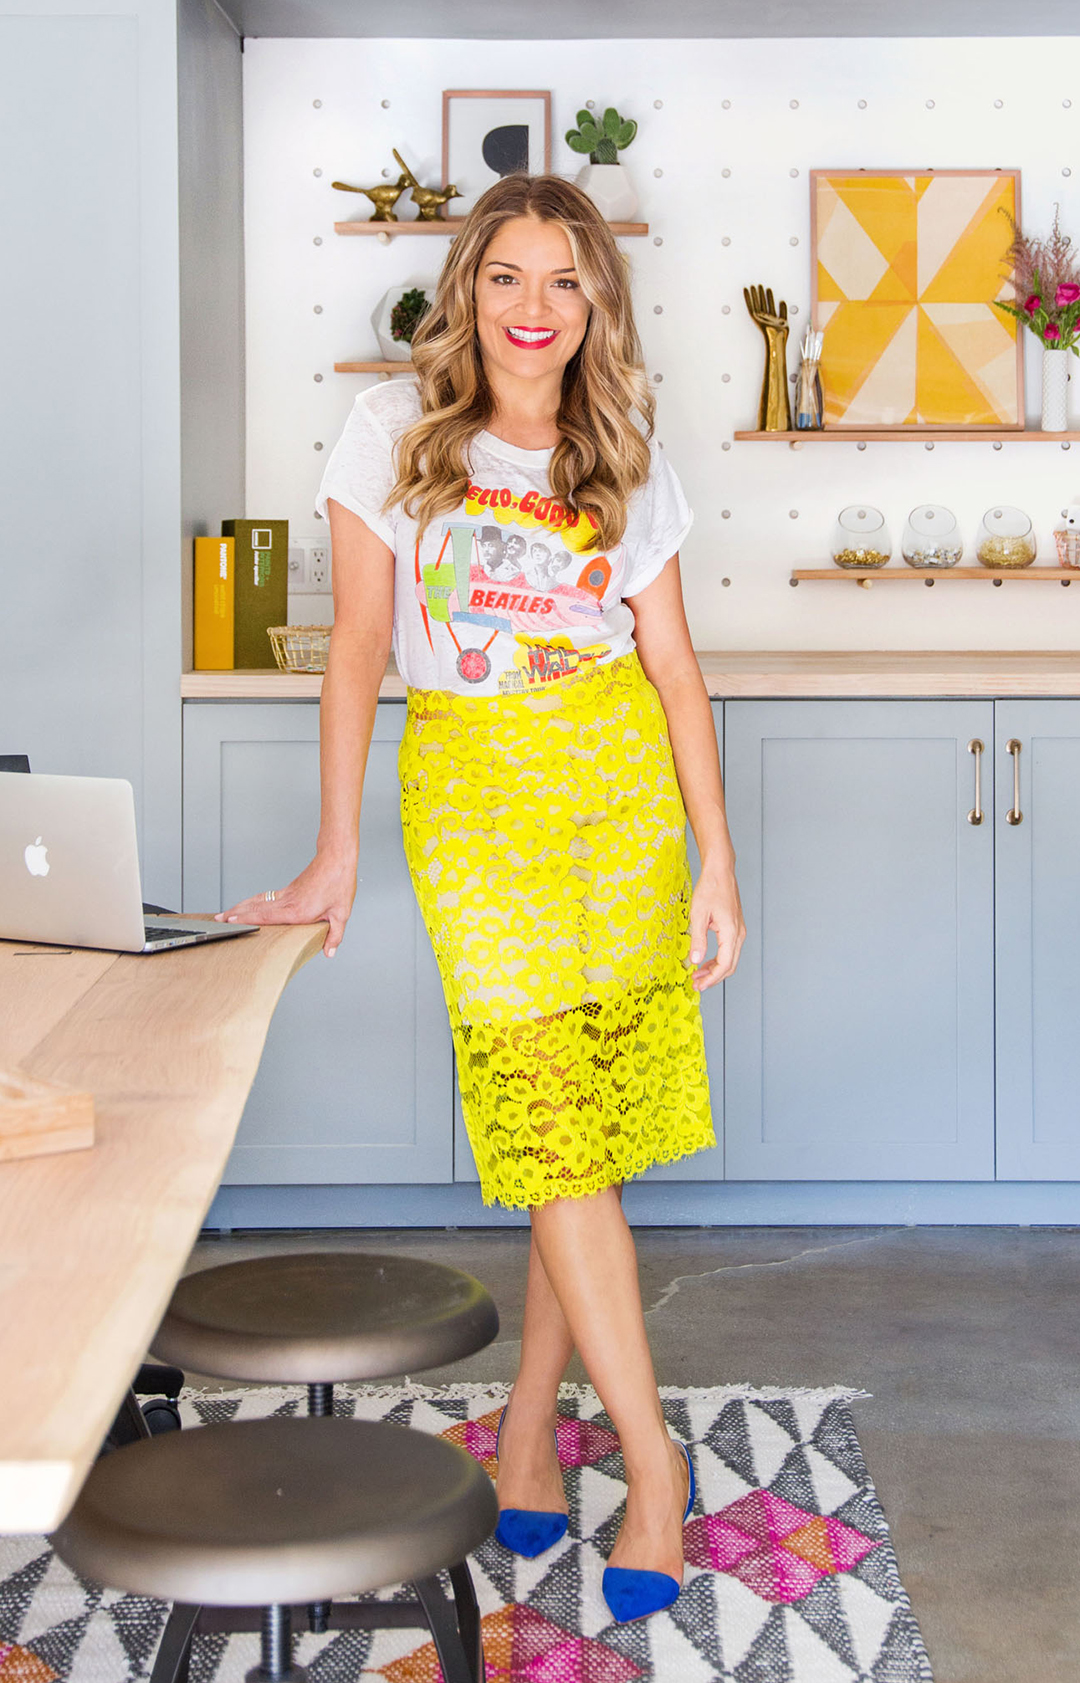 HGTV's Sabrina Soto Shares Her Personal Style Inspiration